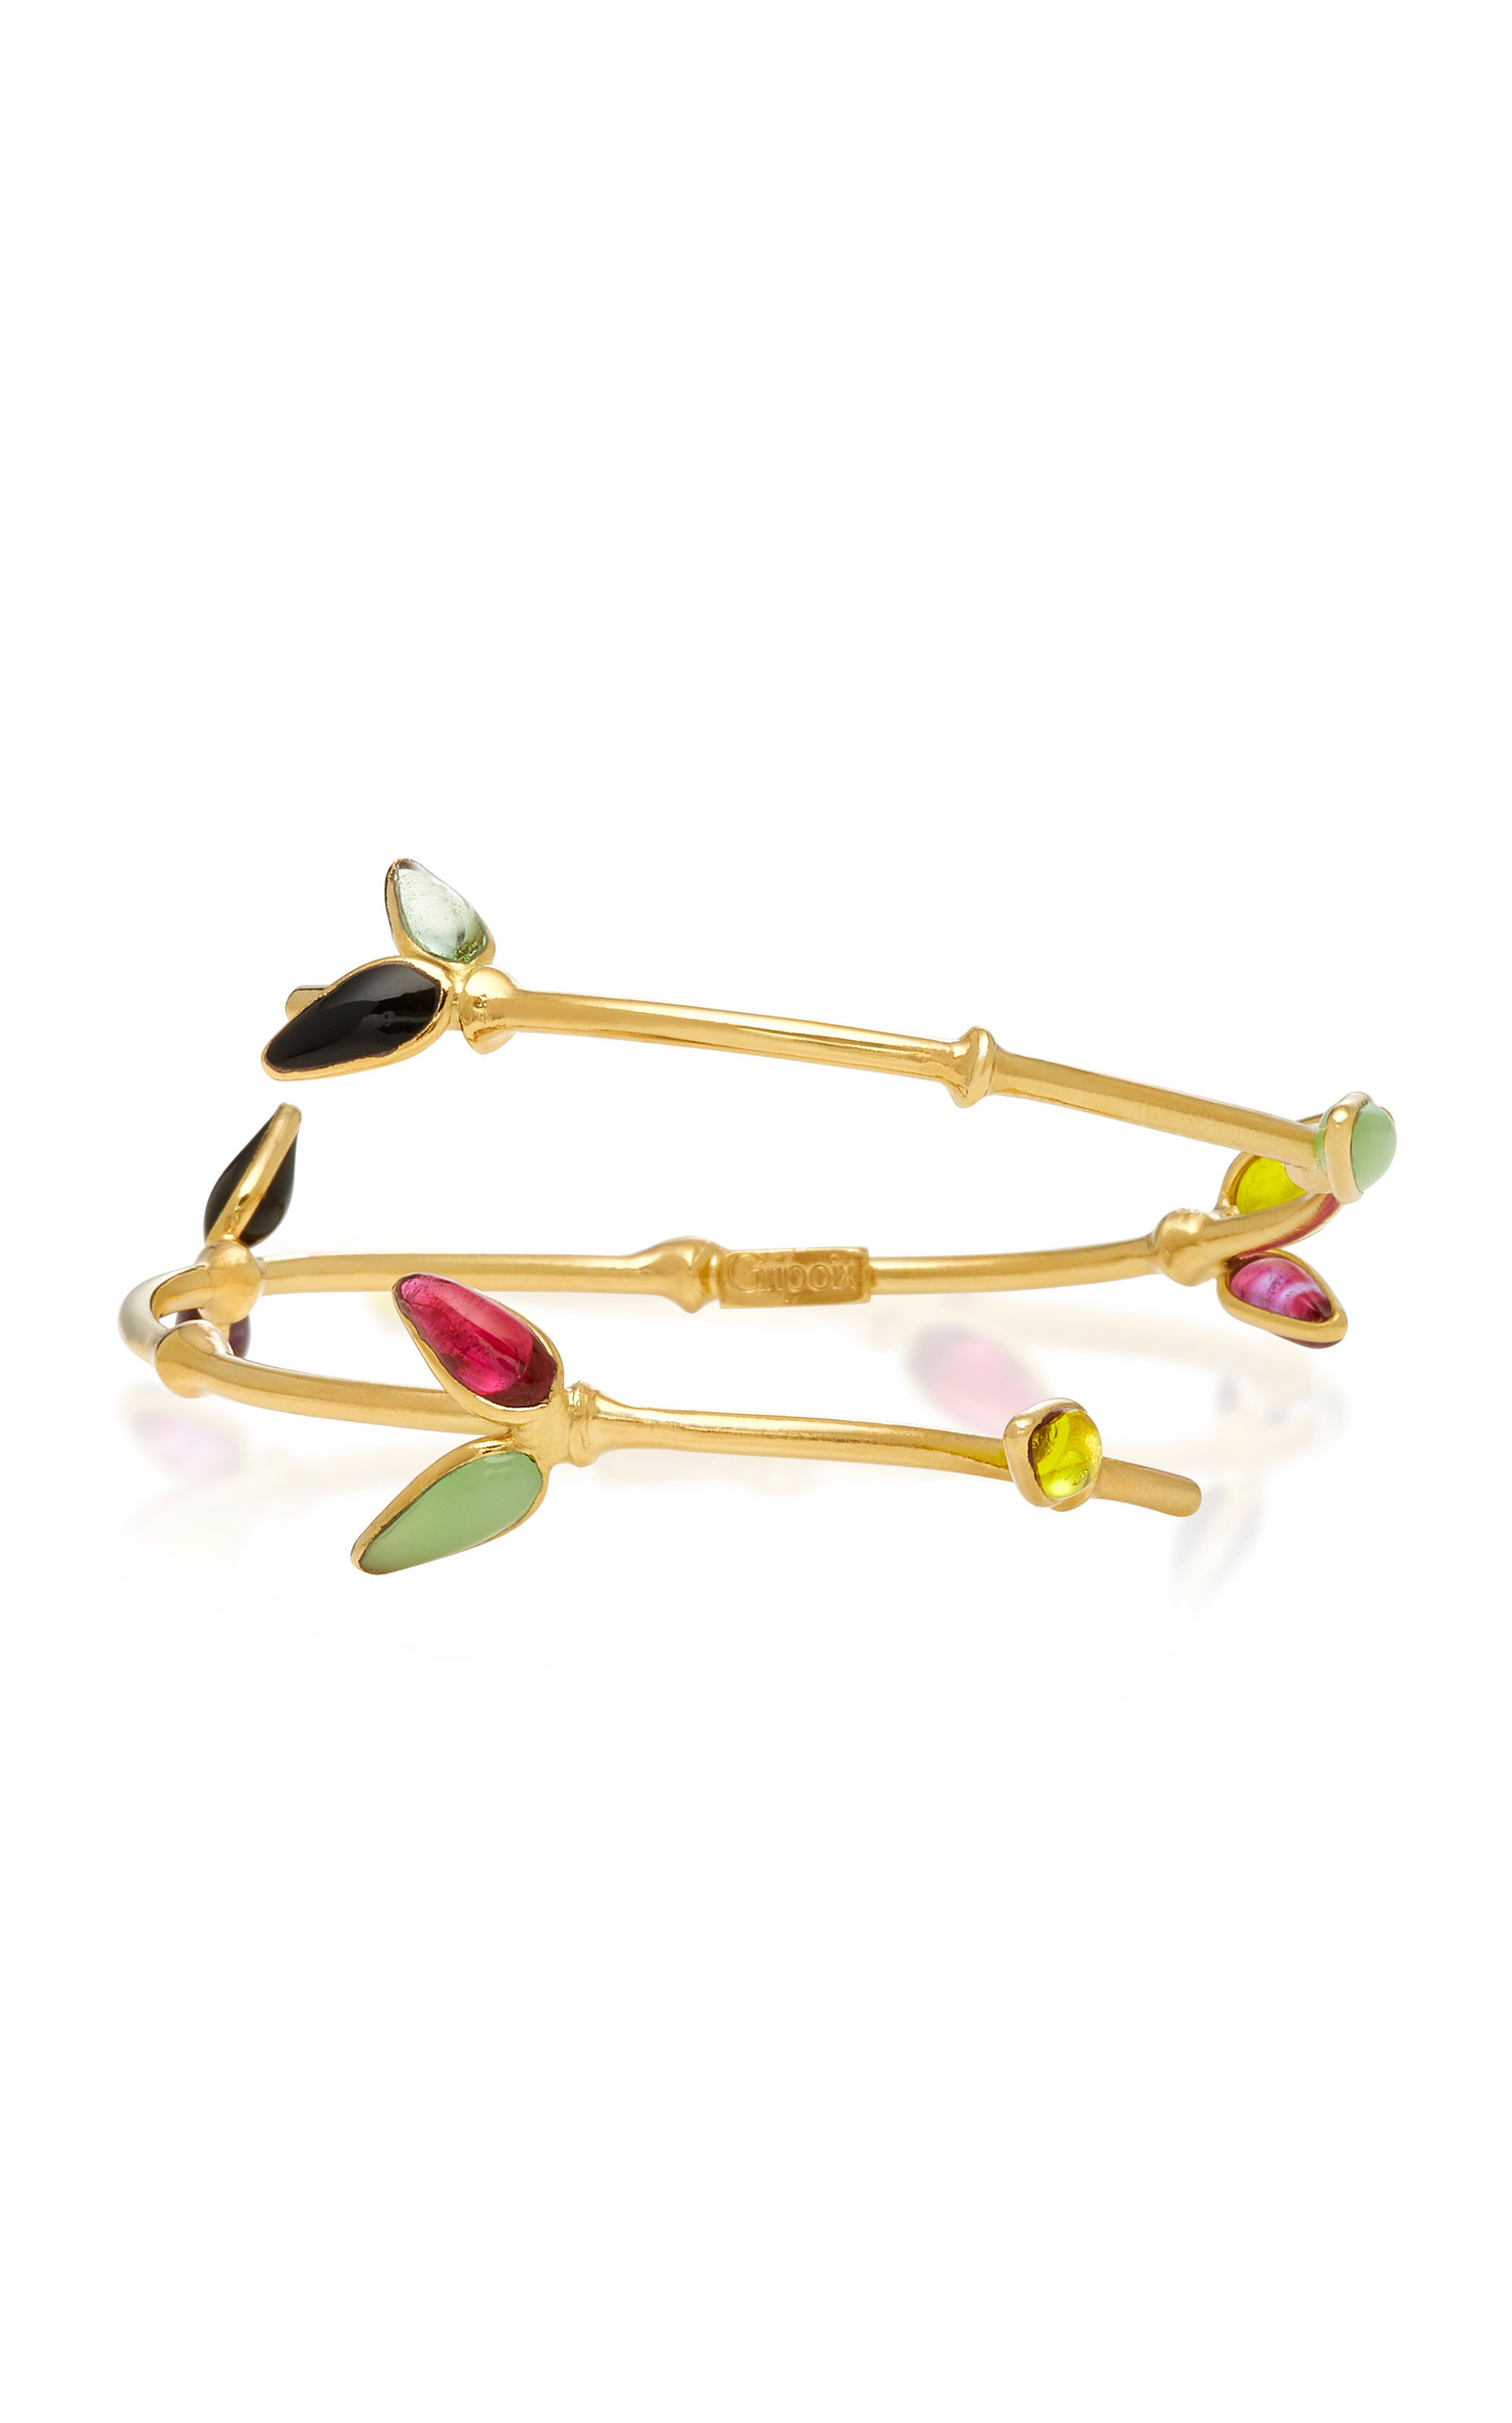 Bamboo Adjustable 24K Gold-Plated Brass and Poured Glass Bangle Bracelet Gripoix Cheap Sale Many Kinds Of Visit Online 8tX8jhU4k